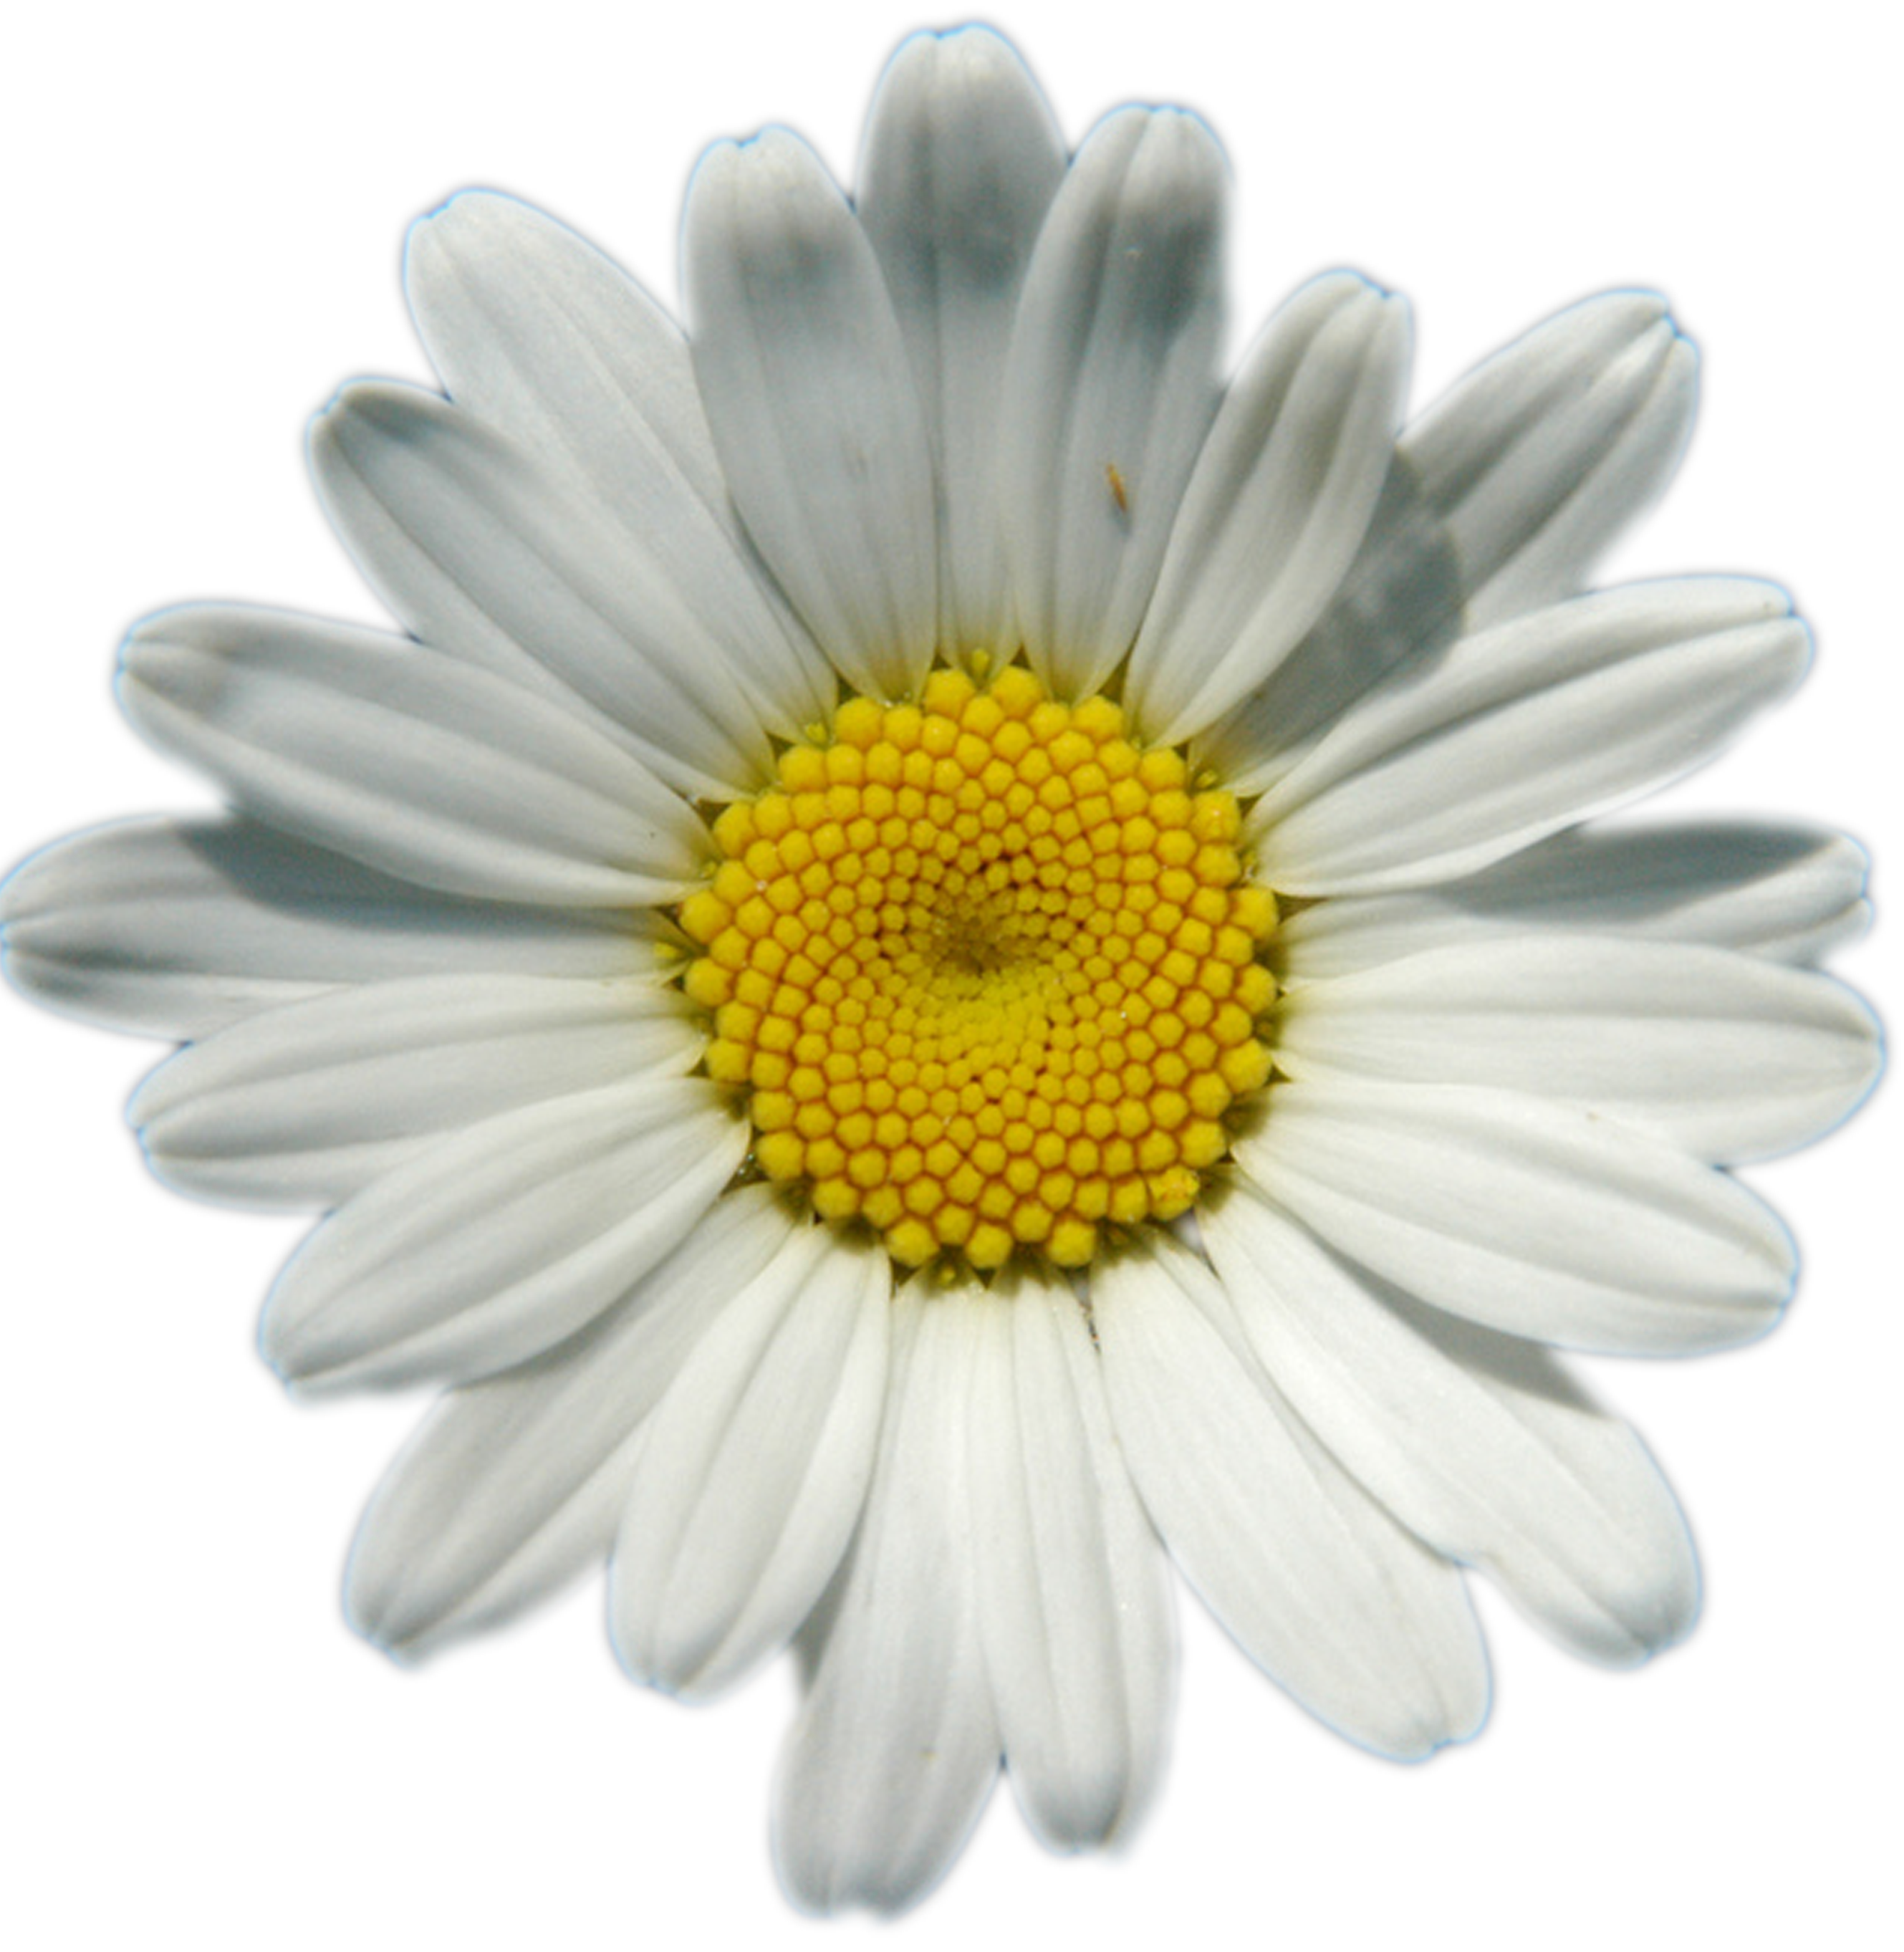 Yellow daisy png. Daisies image background arts